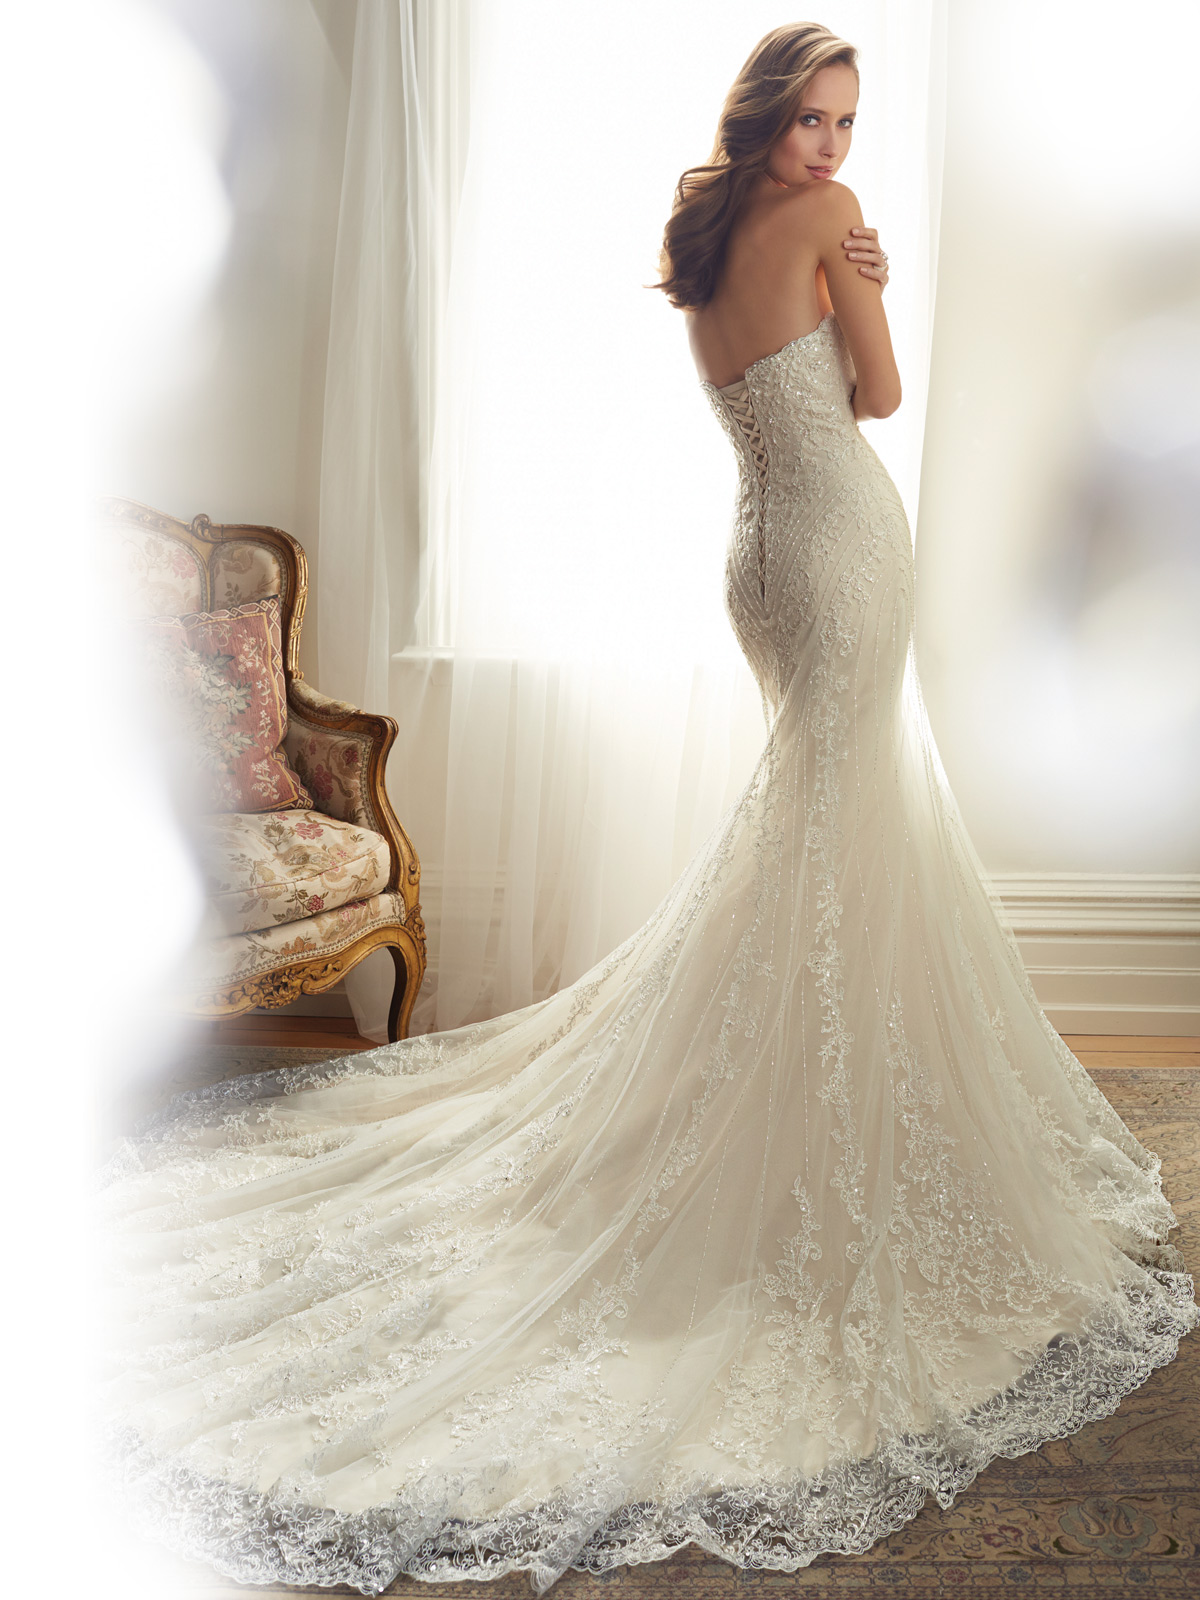 Sophia Tolli Spring 2015 Collection Y11574